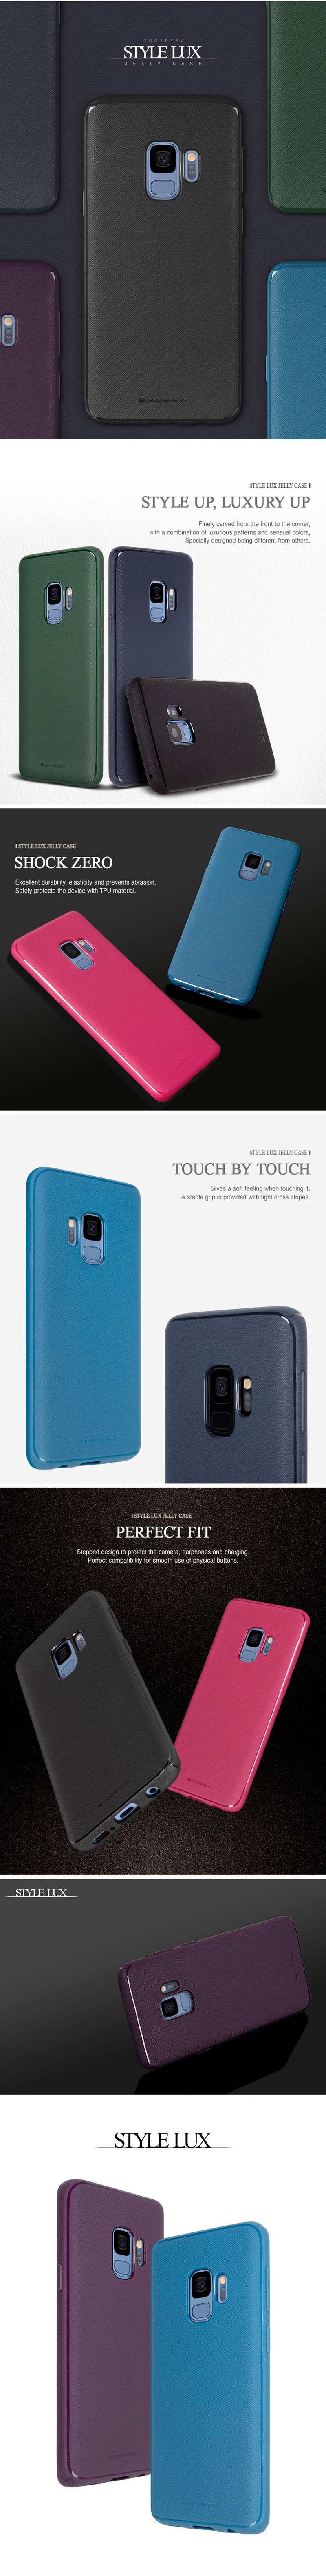 Gsmok Etui Mercury Style Lux Samsung A530 Galaxy A8 2018 Fiolet Goospery Note 9 N960 Pearl Jelly Case Producent